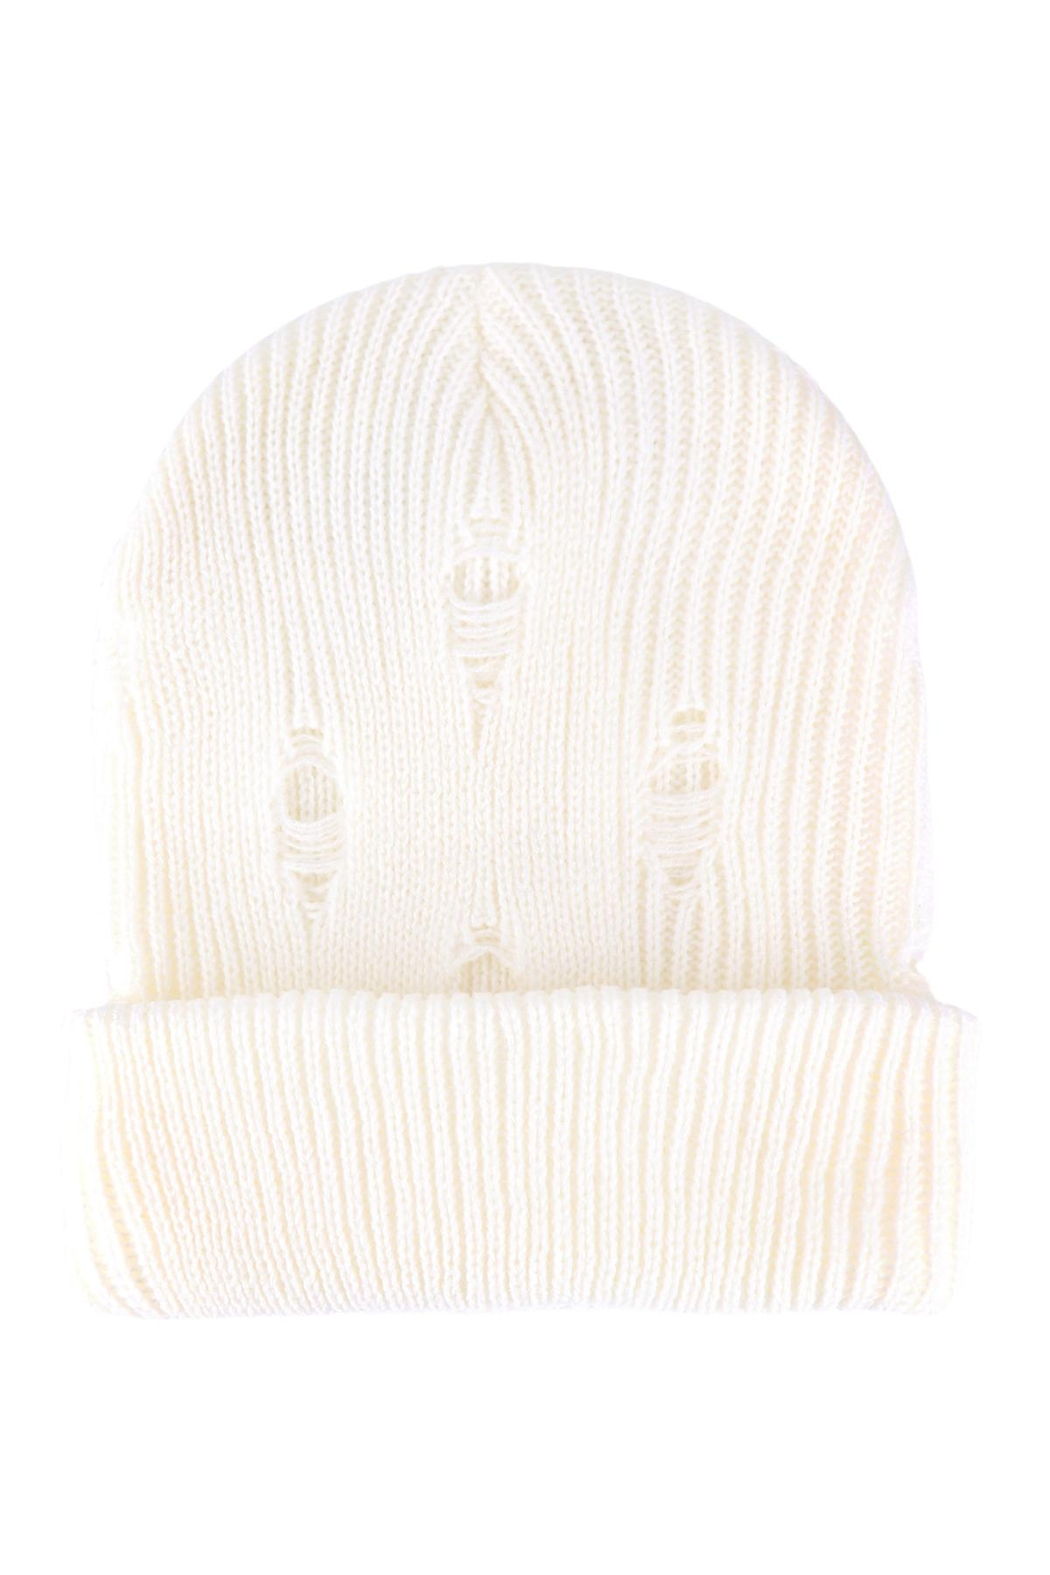 Riah Fashion Vintage-Knitted-Fashion-Beanie - Front Cropped Image